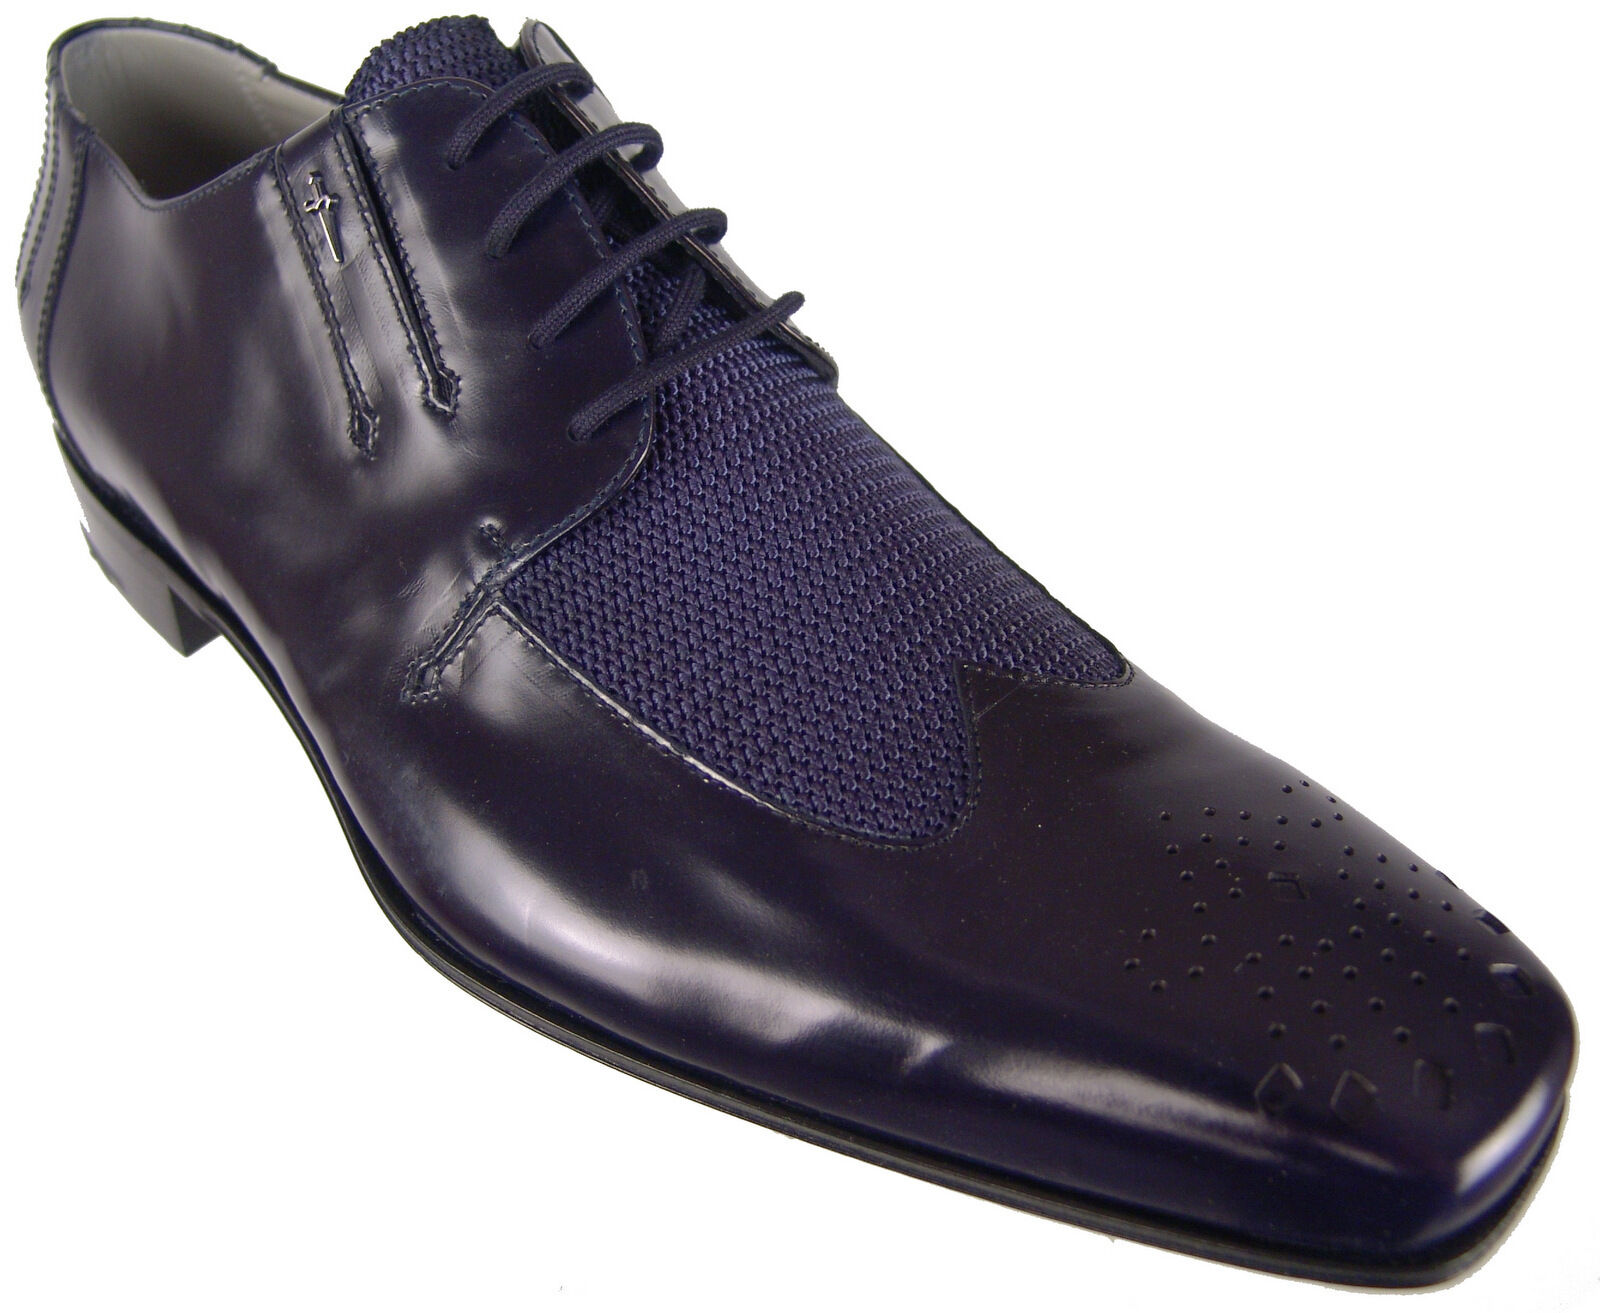 Authentique  870 Cesare Paciotti Navy Derbies US 8.5 Italian Designer chaussures